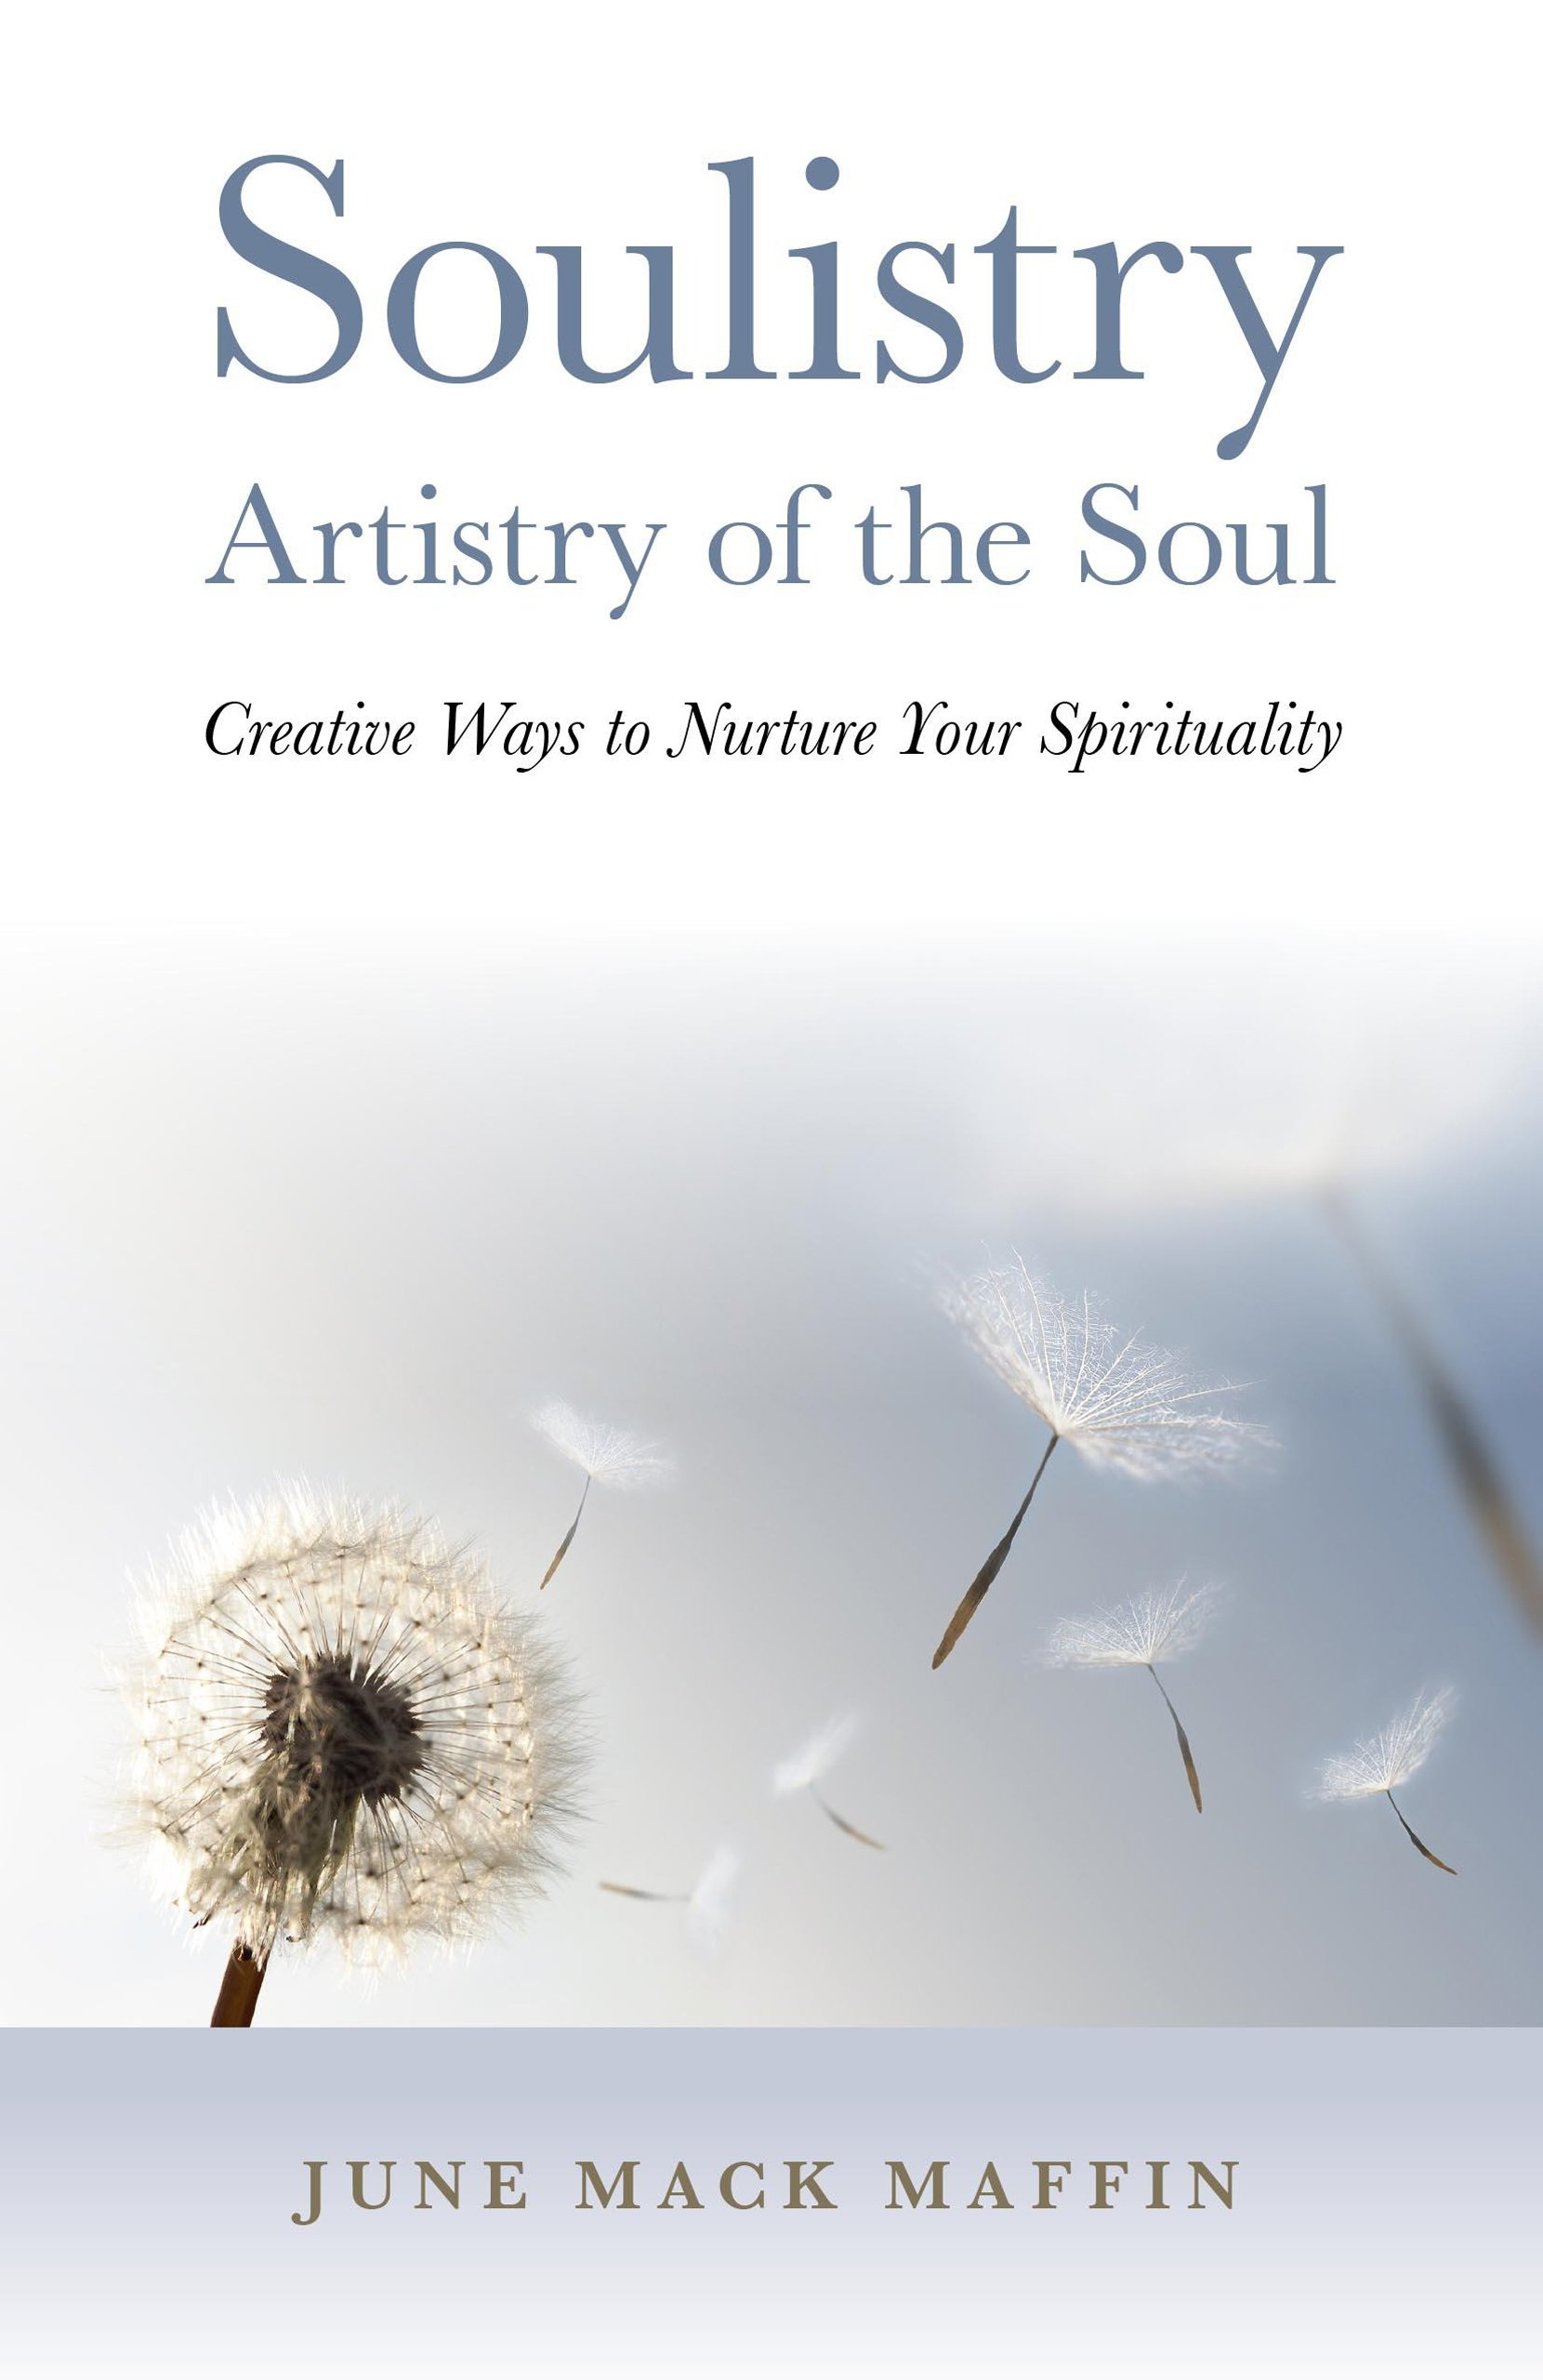 Download Soulistry- Artistry of the Soul: Creative Ways to Nurture Your Spirituality pdf